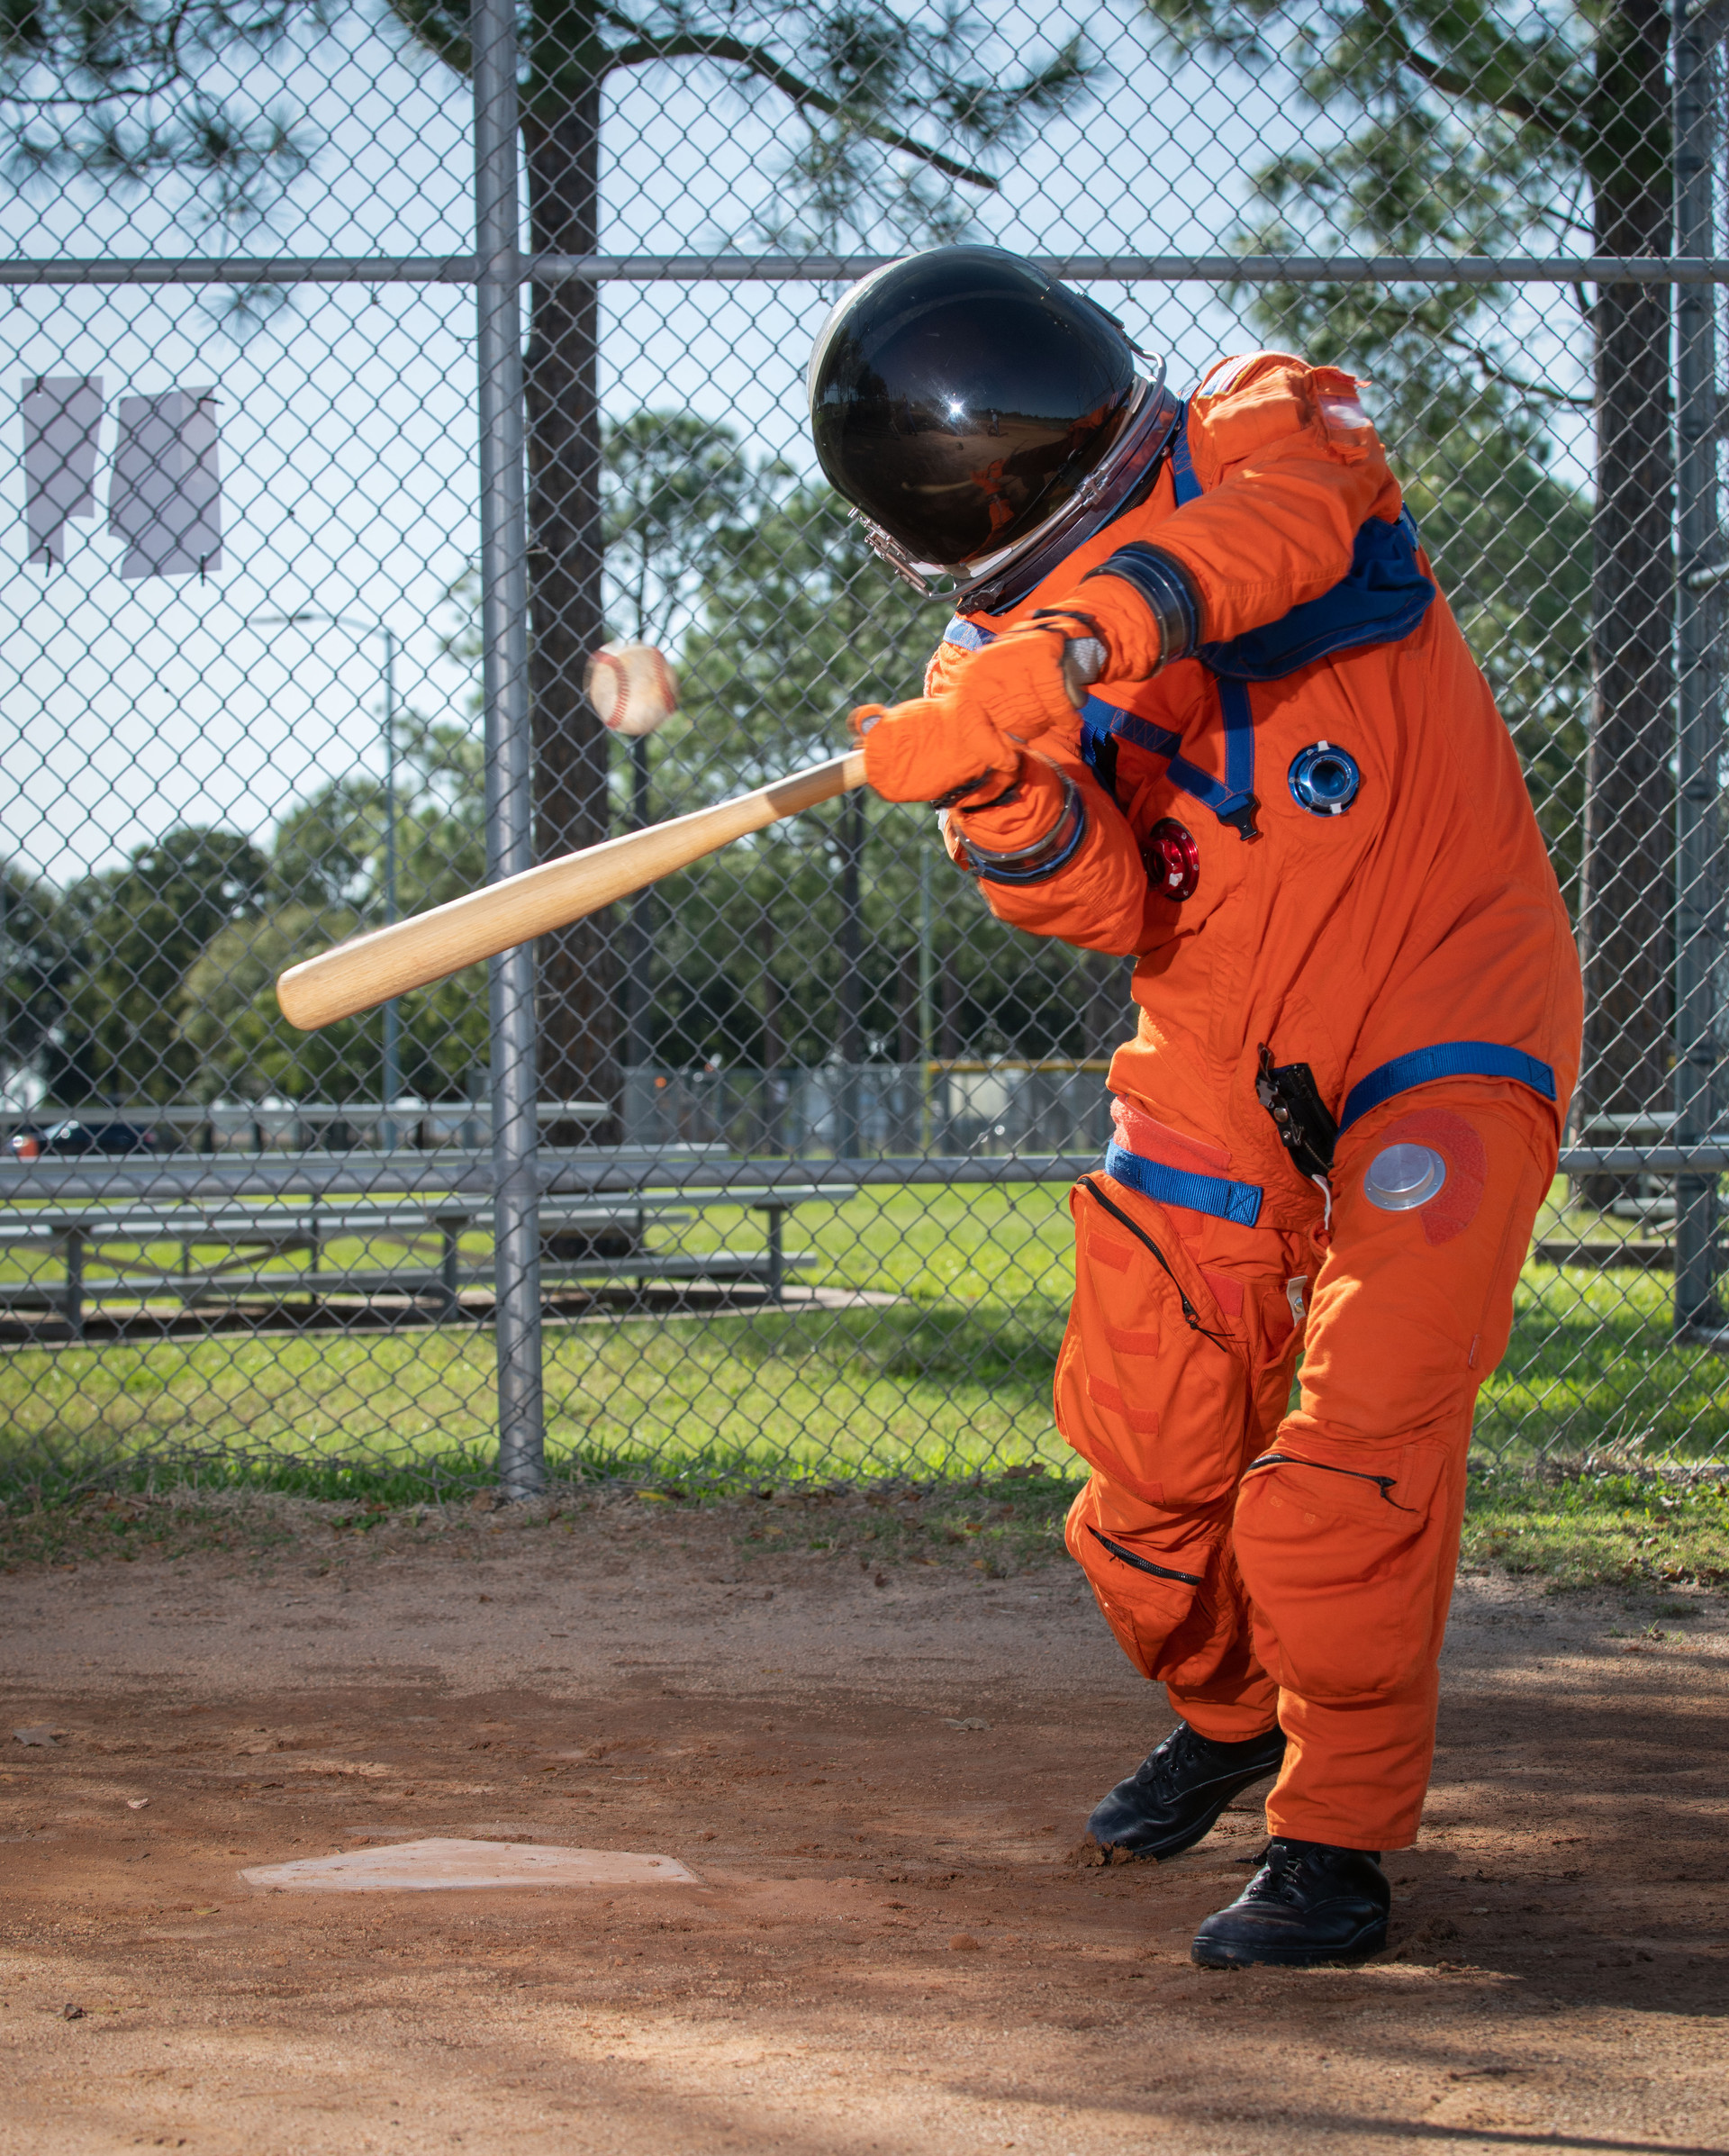 The Orion Crew Survival System suit is designed to protect astronauts on launch and re-entry inside the Orion Spacecraft. The suit was taken out to the baseball field to demonstrate the mobility of the suit in honor of the World Series in Houston.